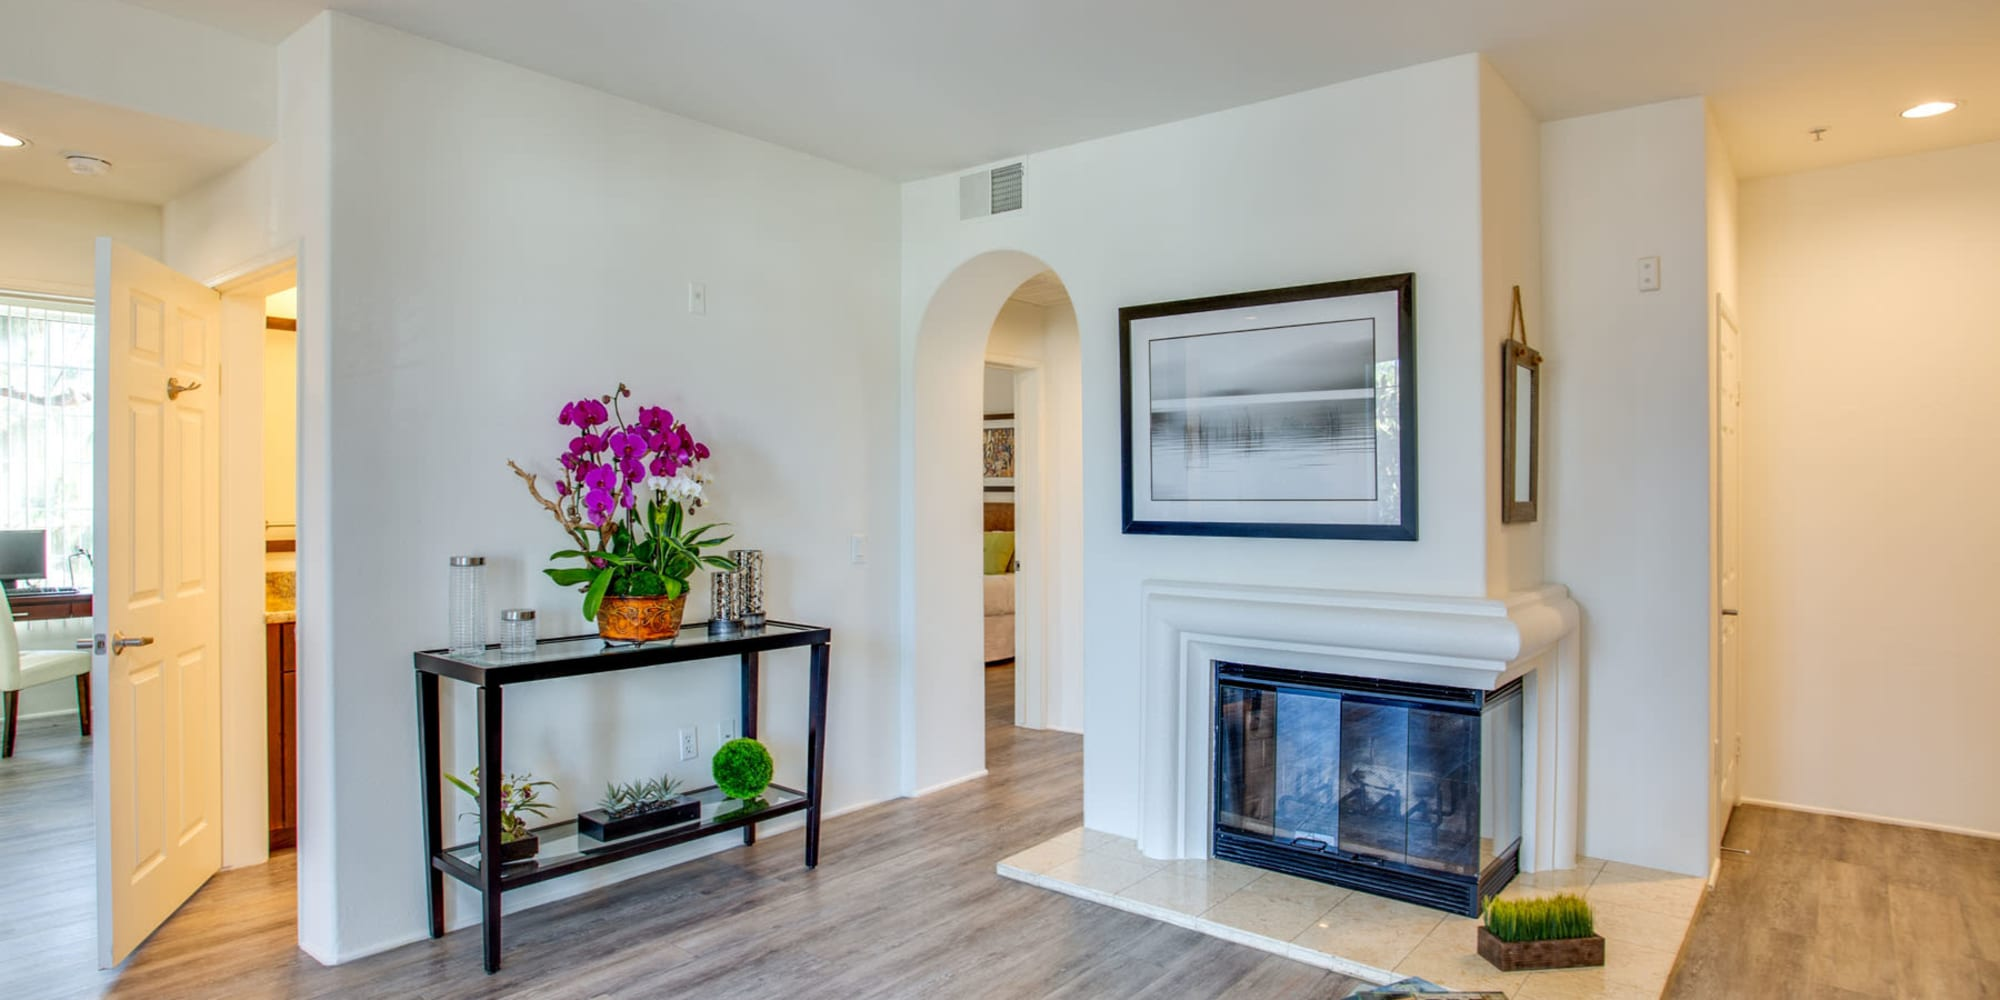 Artwork hung above the fireplace in a model home's living area at L'Estancia in Studio City, California